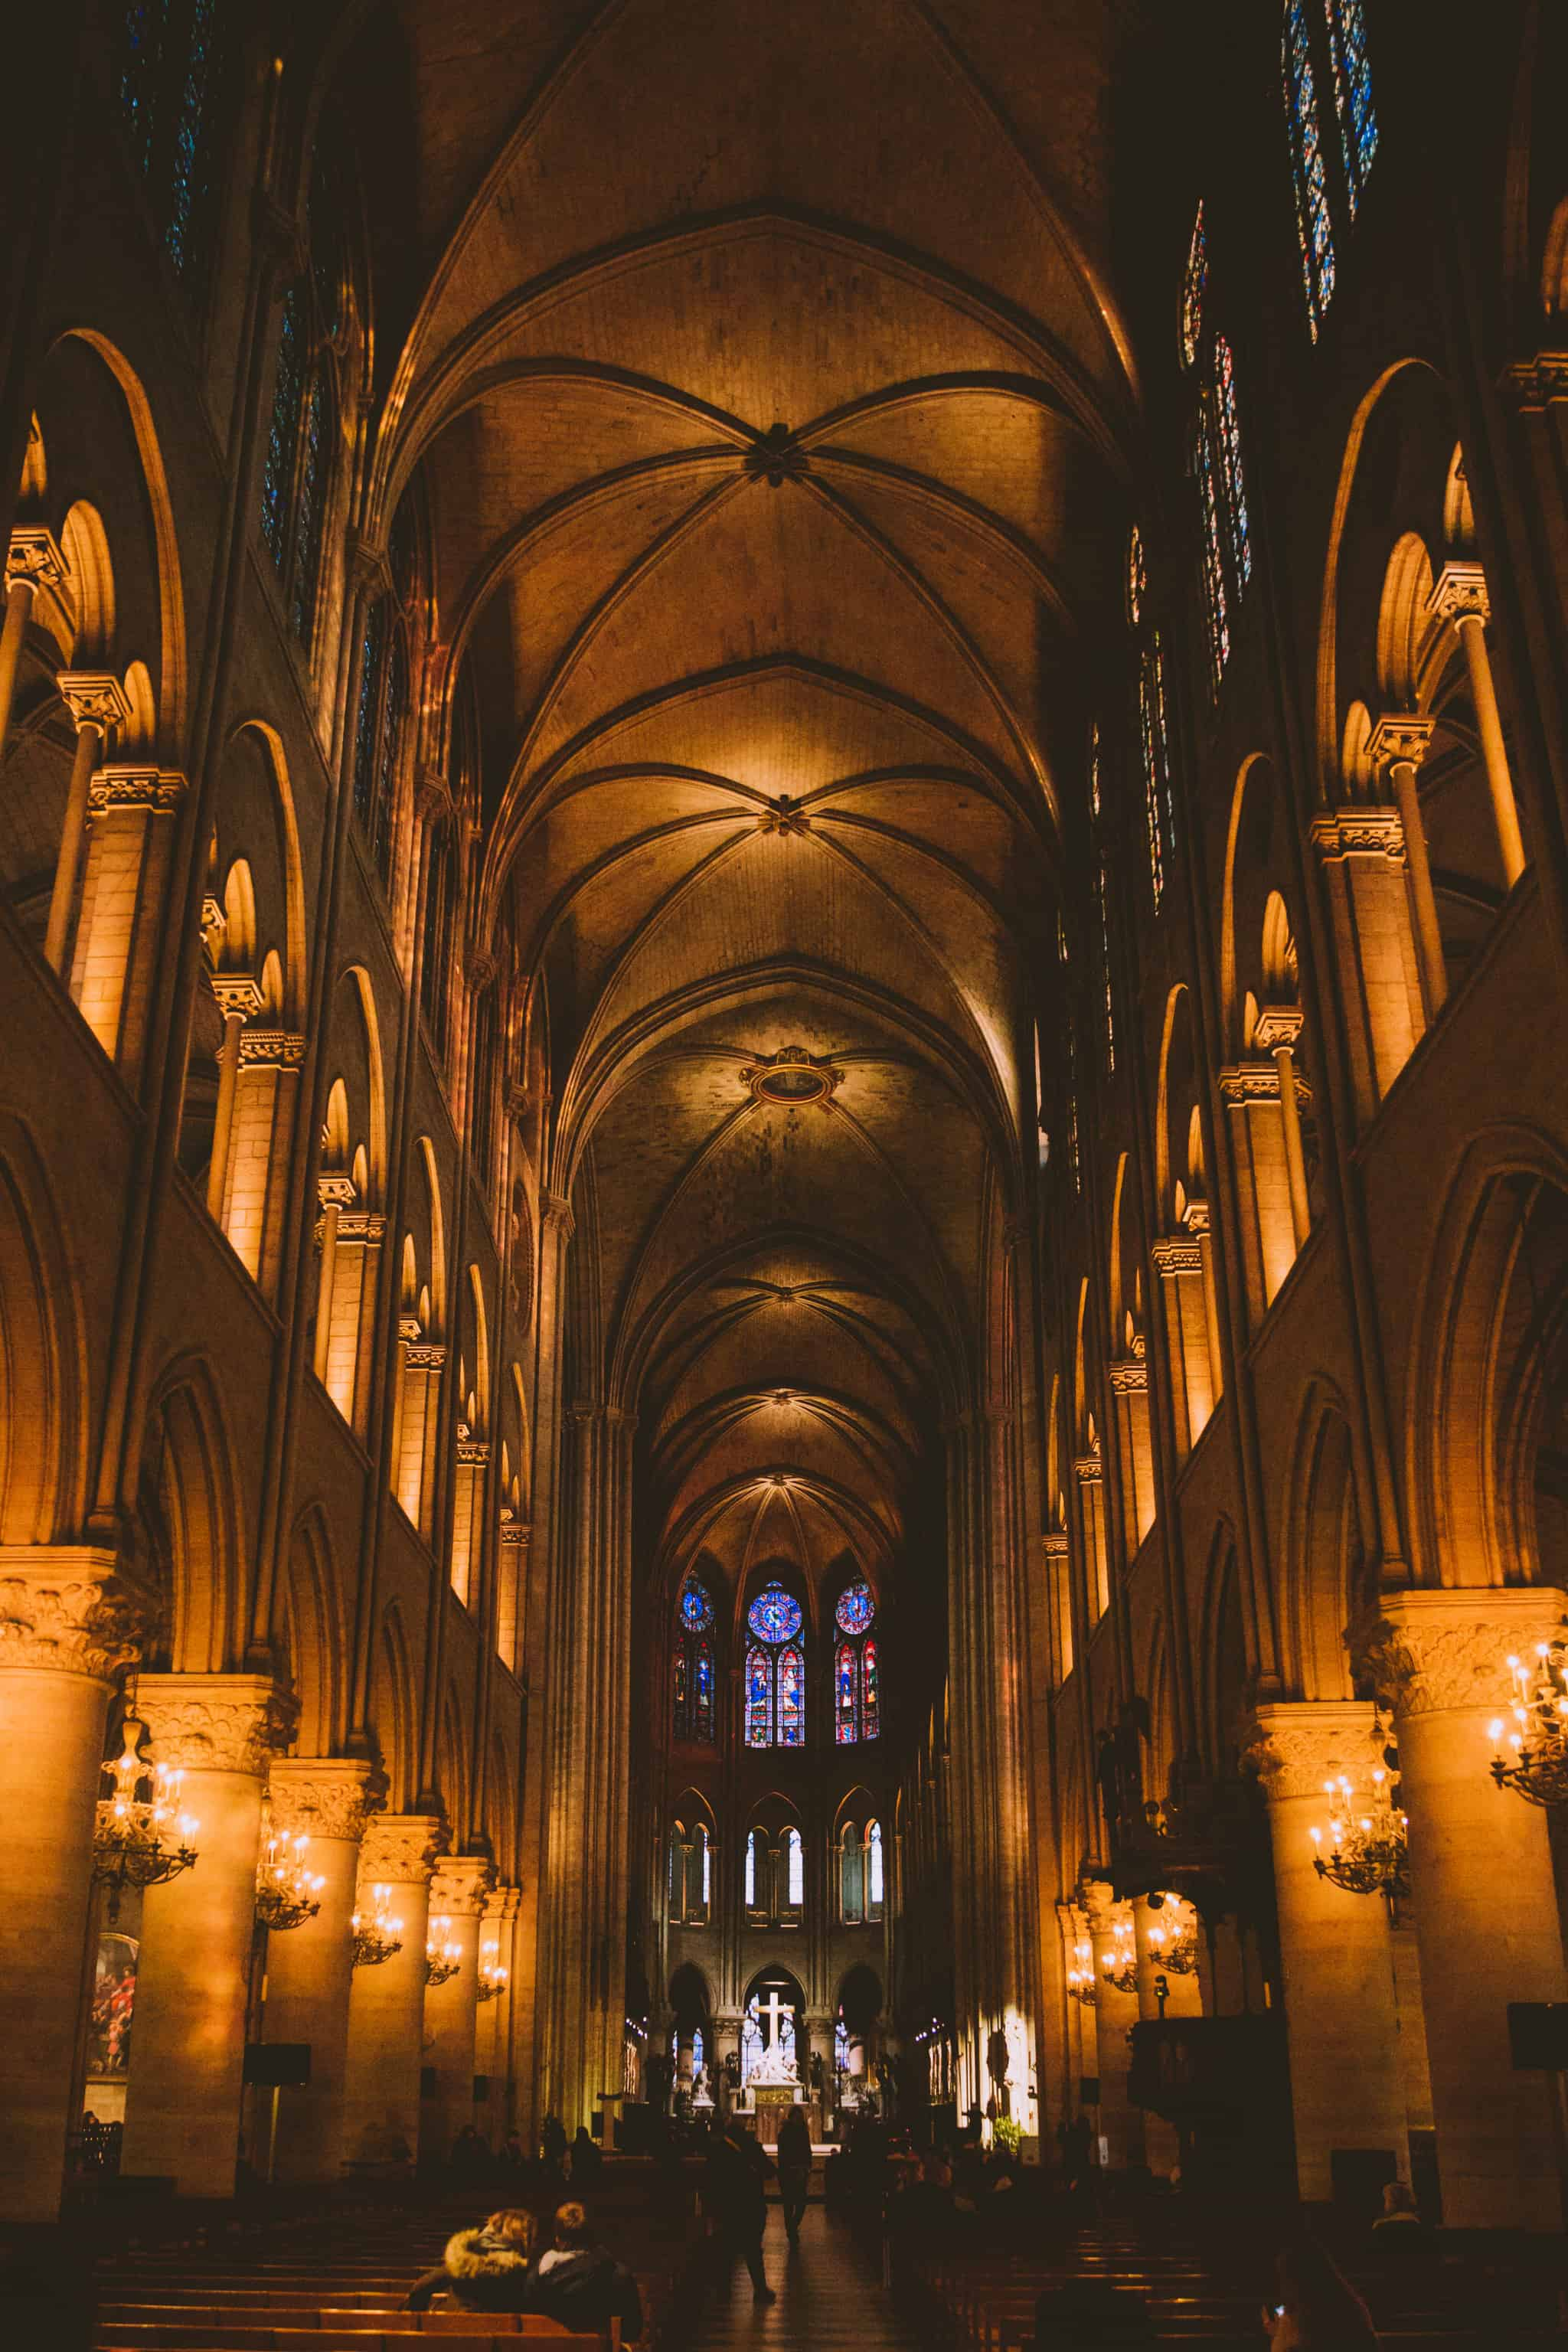 Inside Notre Dame - Discover the best photography spots in Paris, France in this all-inclusive post! We're including iconic favorites like the Eiffel Tower and Champs Elyssse, but also hidden gems like Saint Chapelle and Musee d'Orsay Clocks. Find the best Instagram spots in Paris here! #paris #france #eiffeltower #photography #french #instagram #laduree #champselysees #museedorsay #arcdetriomphe #louvre #macaron #europe